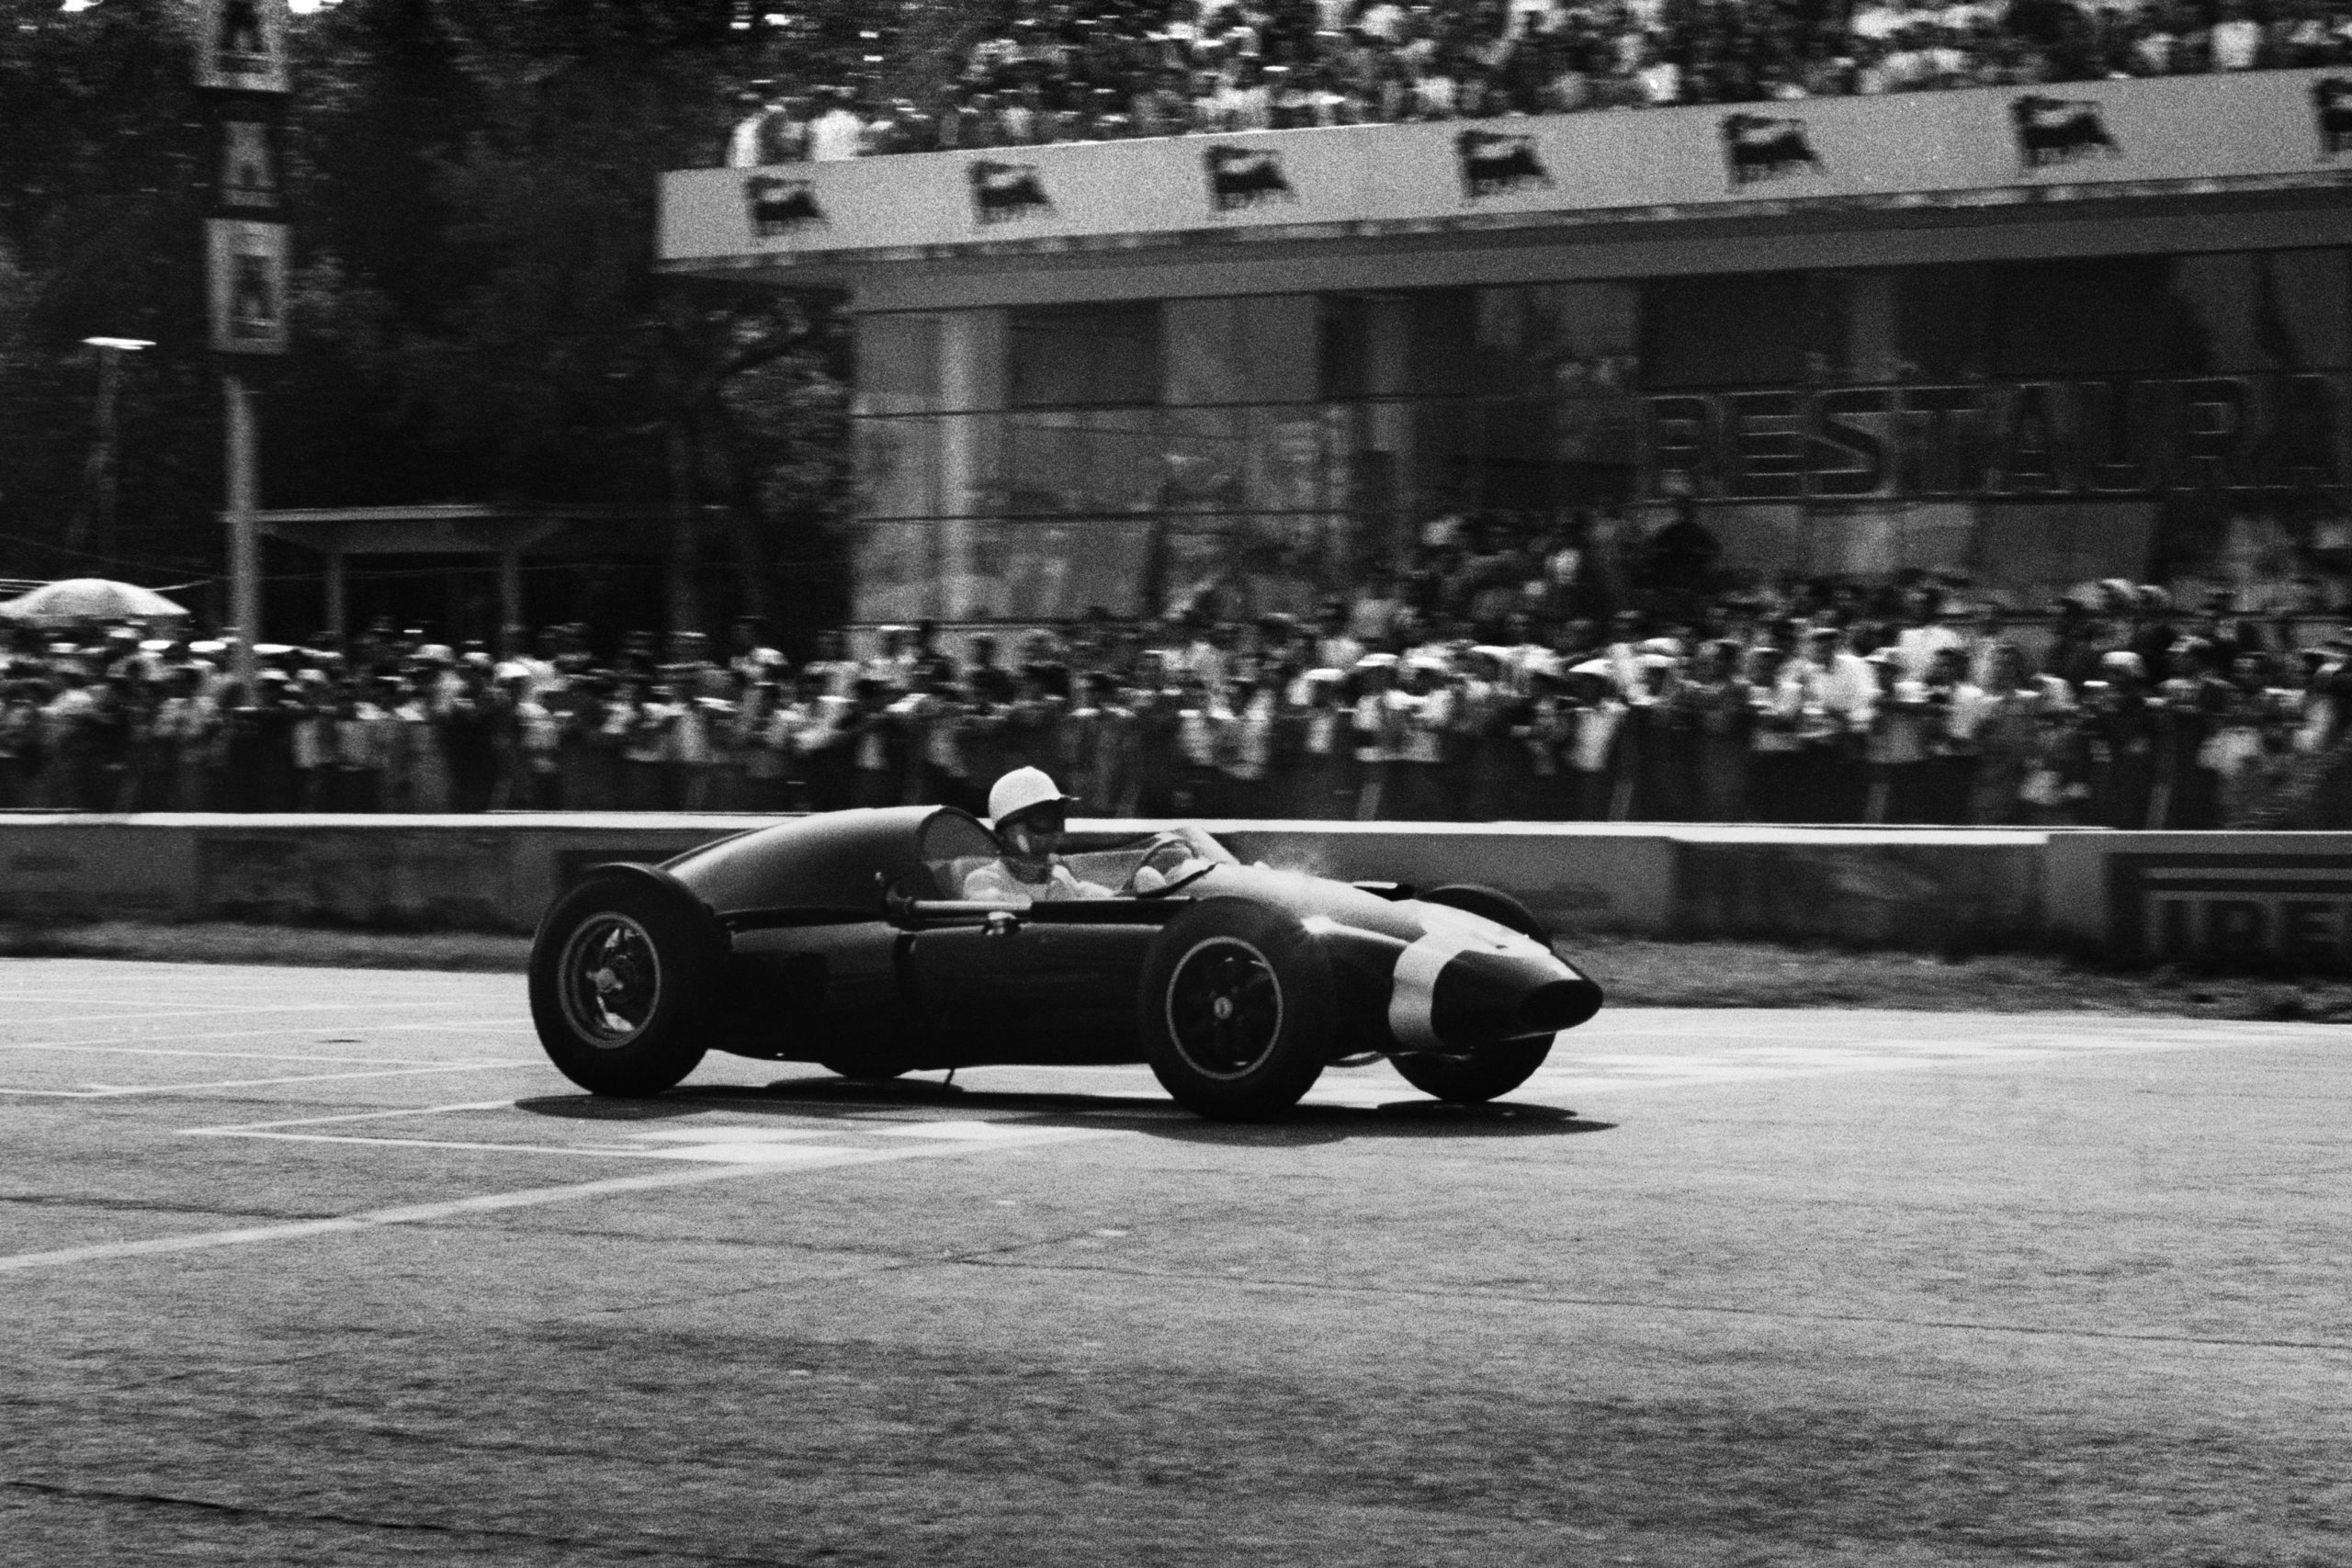 Stirling Moss flying in his Cooper T51-Climax